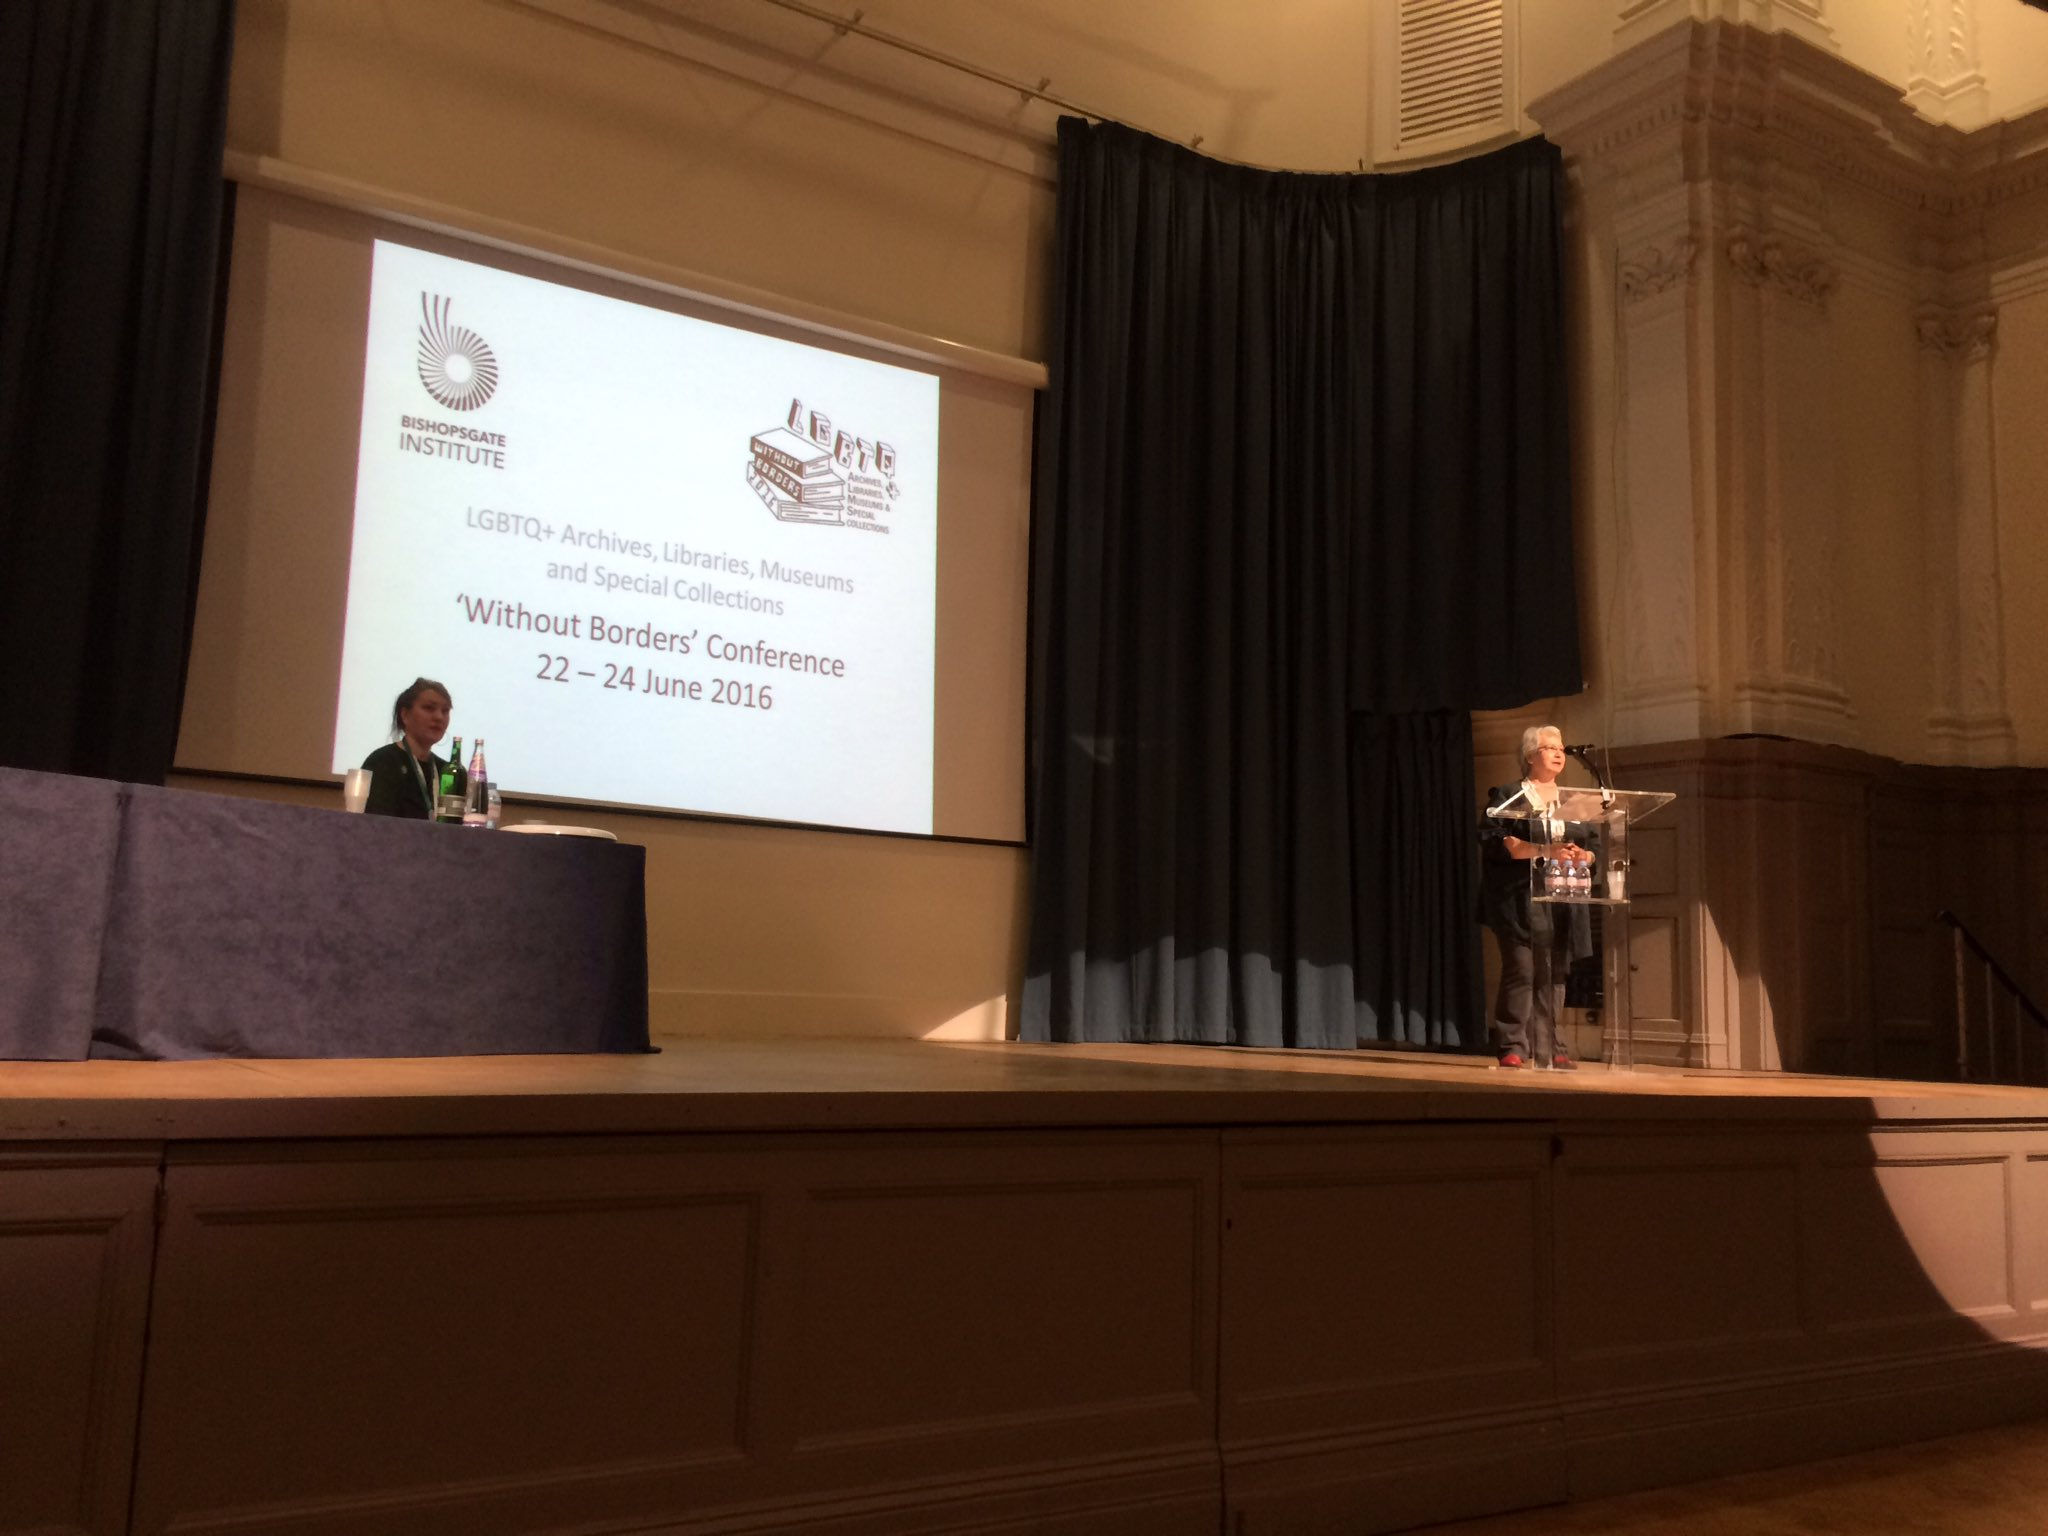 and we're off! #ALMS2016 opening address from @JanPimblett & @historitage at the @BishopsgateInst https://t.co/96xLEl8JQU